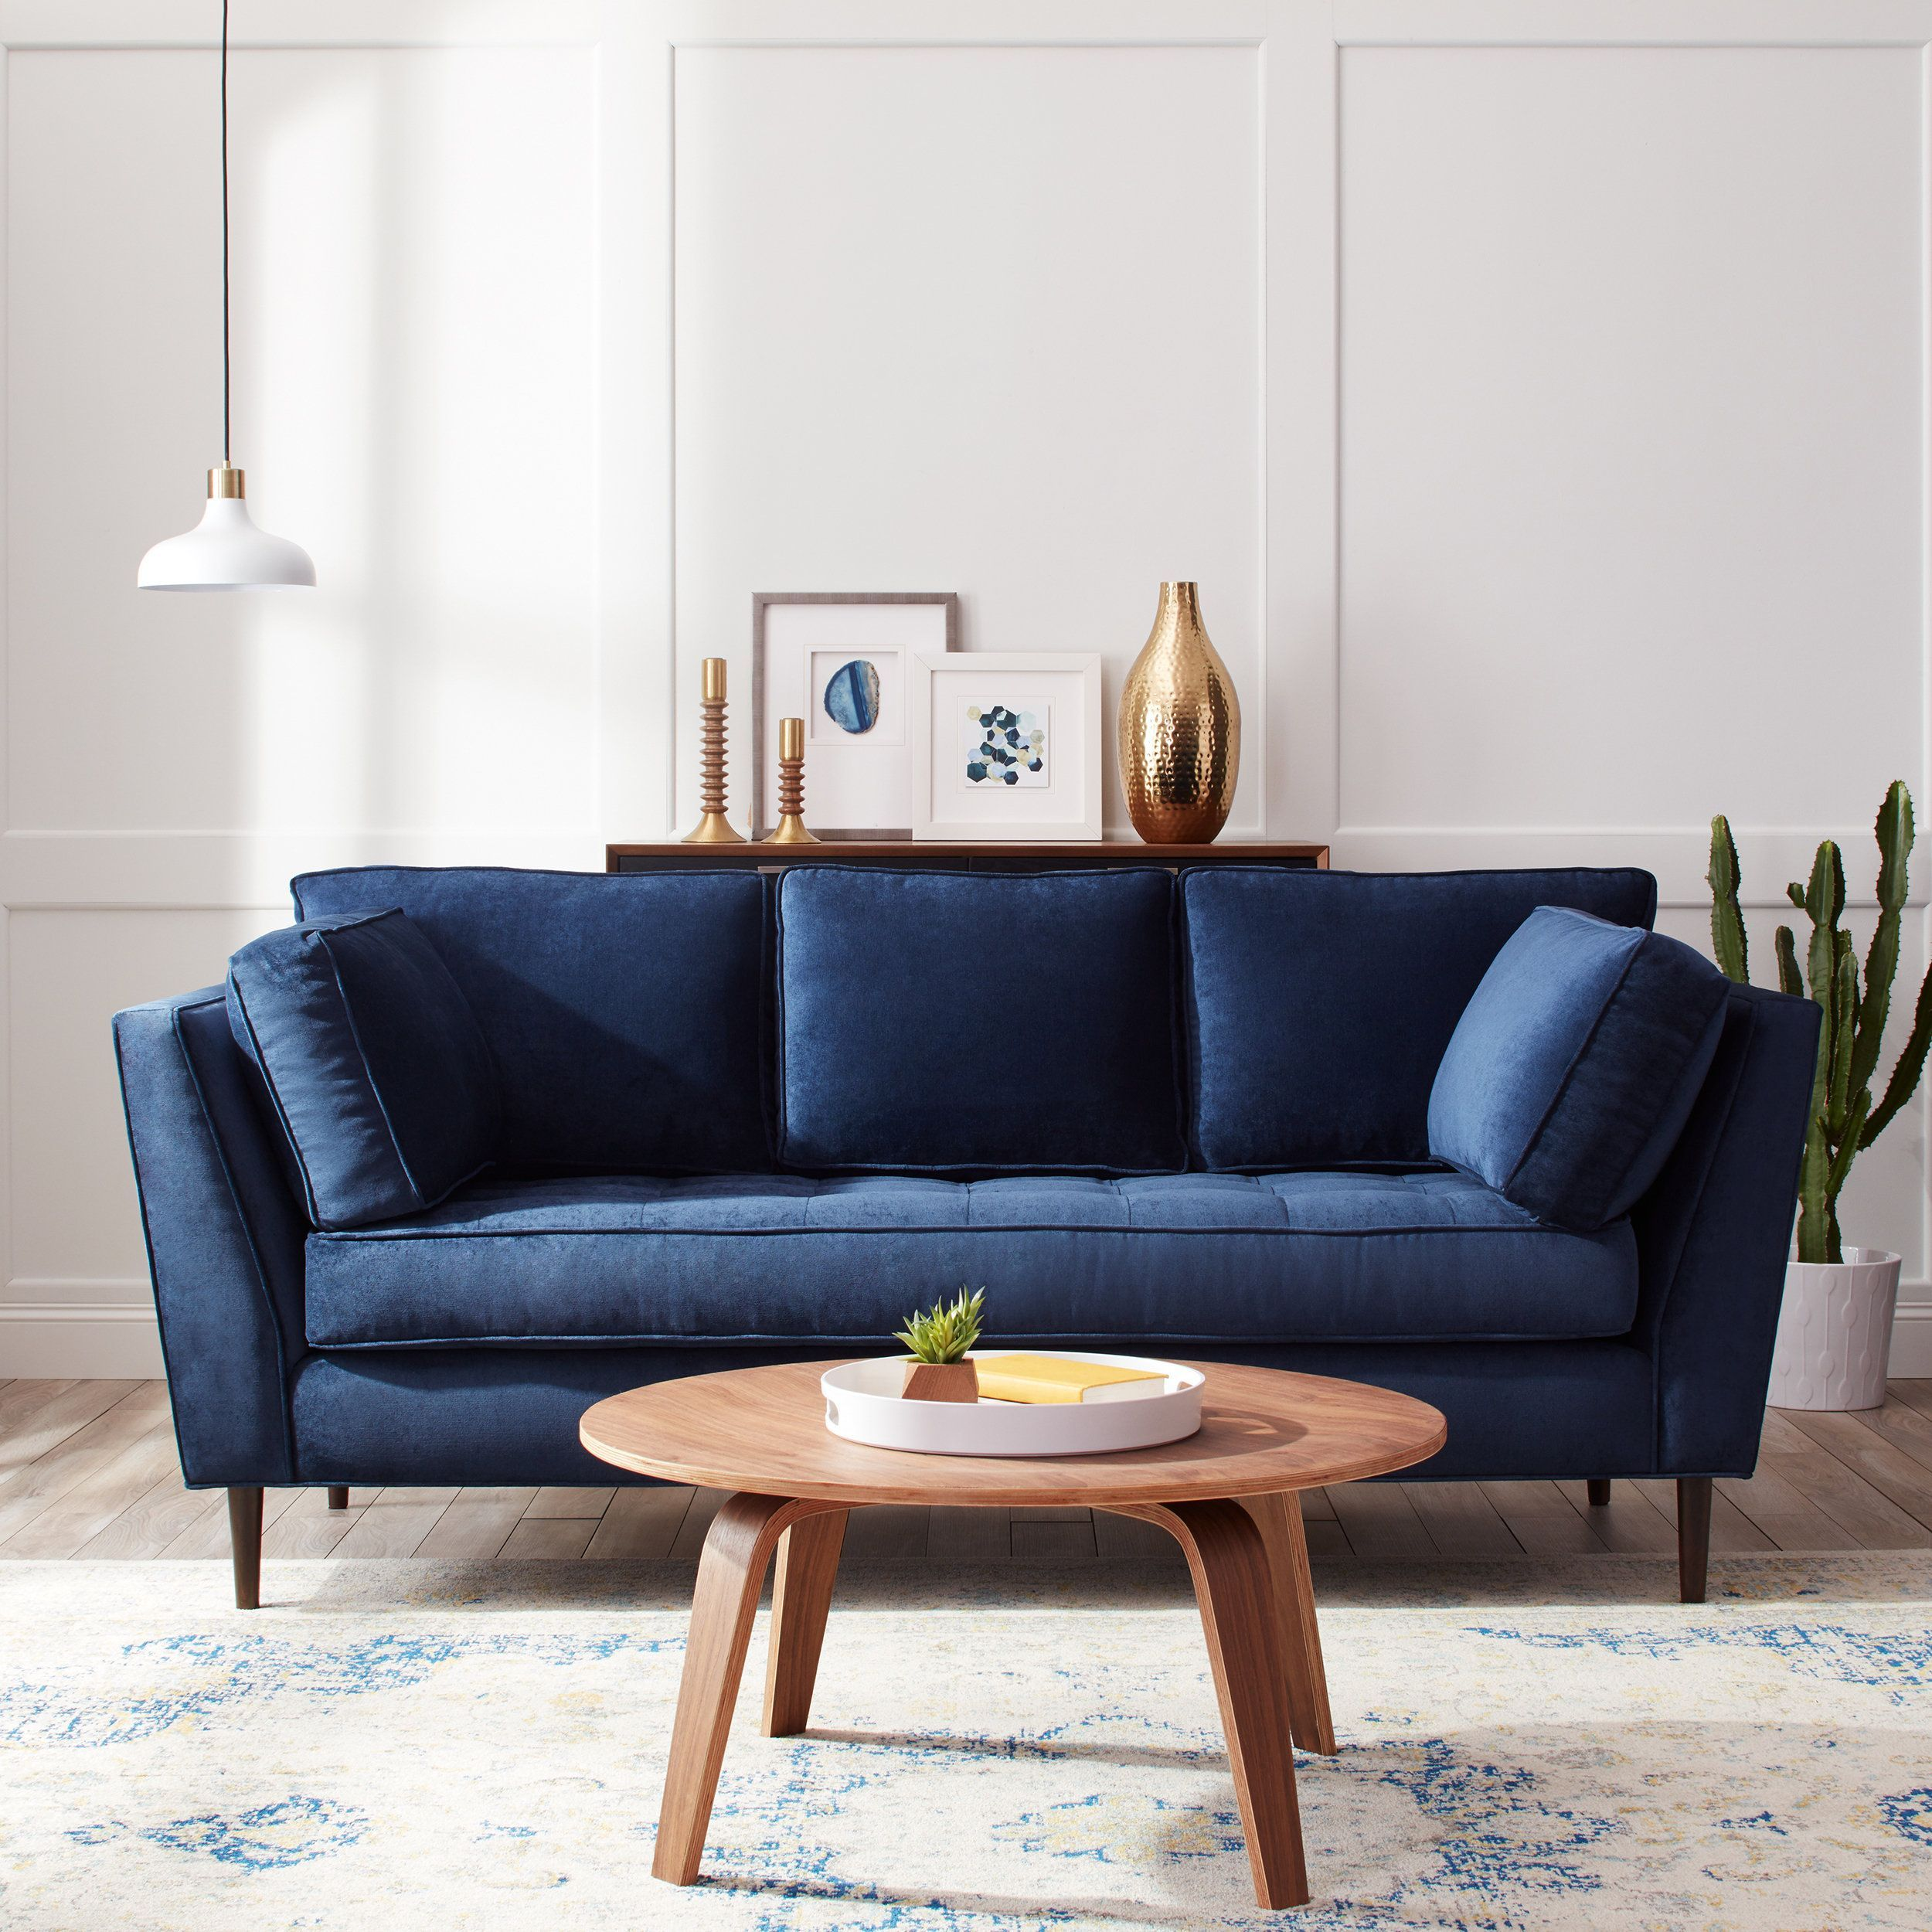 James Mid Century Sonoma Navy Blue Sofa Blue Couch Living Room